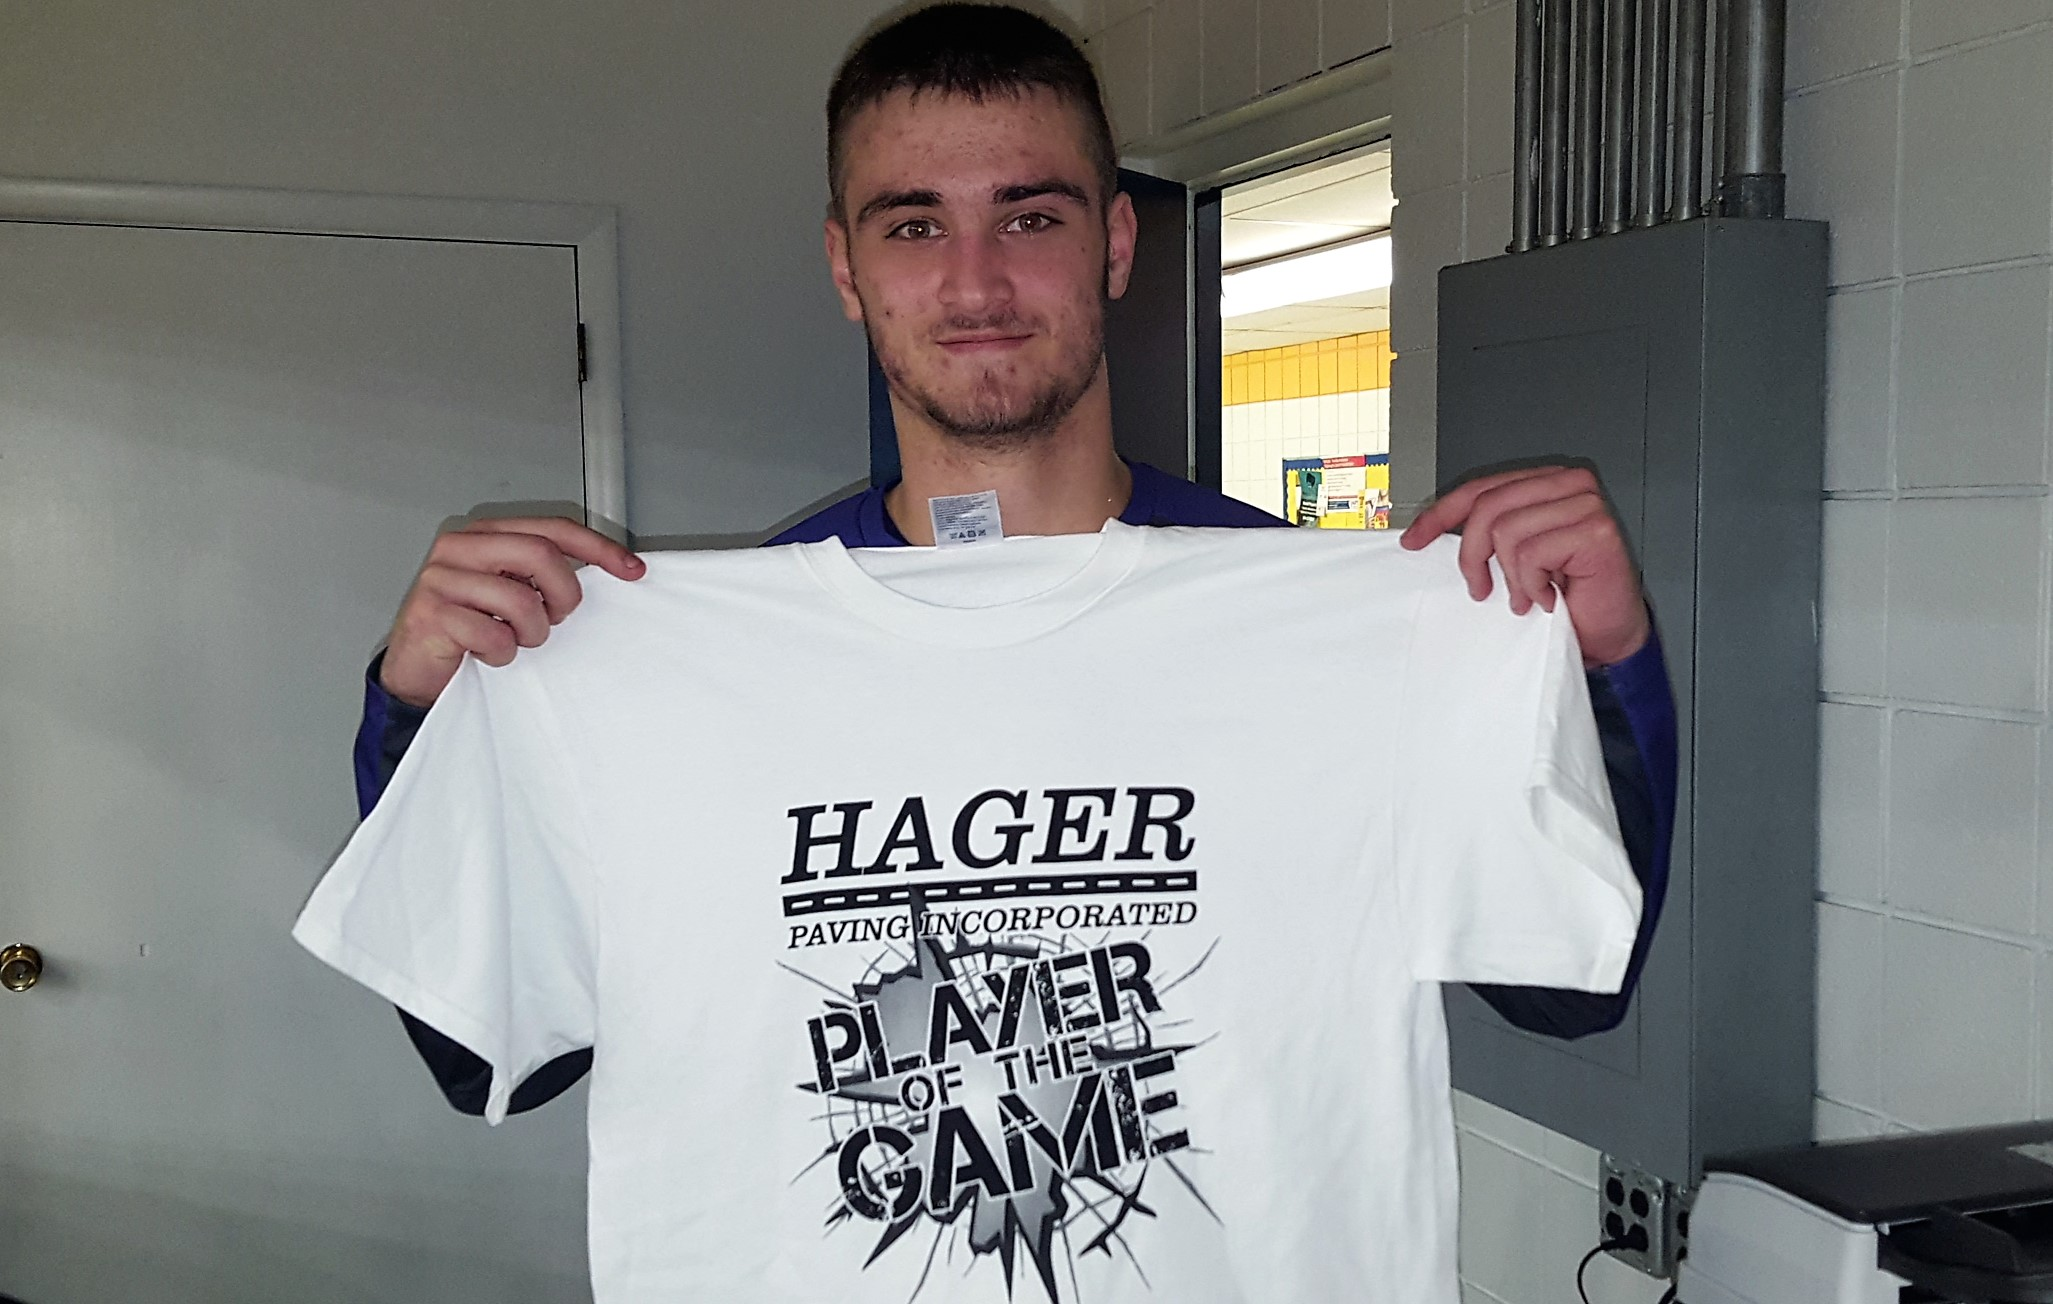 Chandler Turner Hager Paving Player of the Game